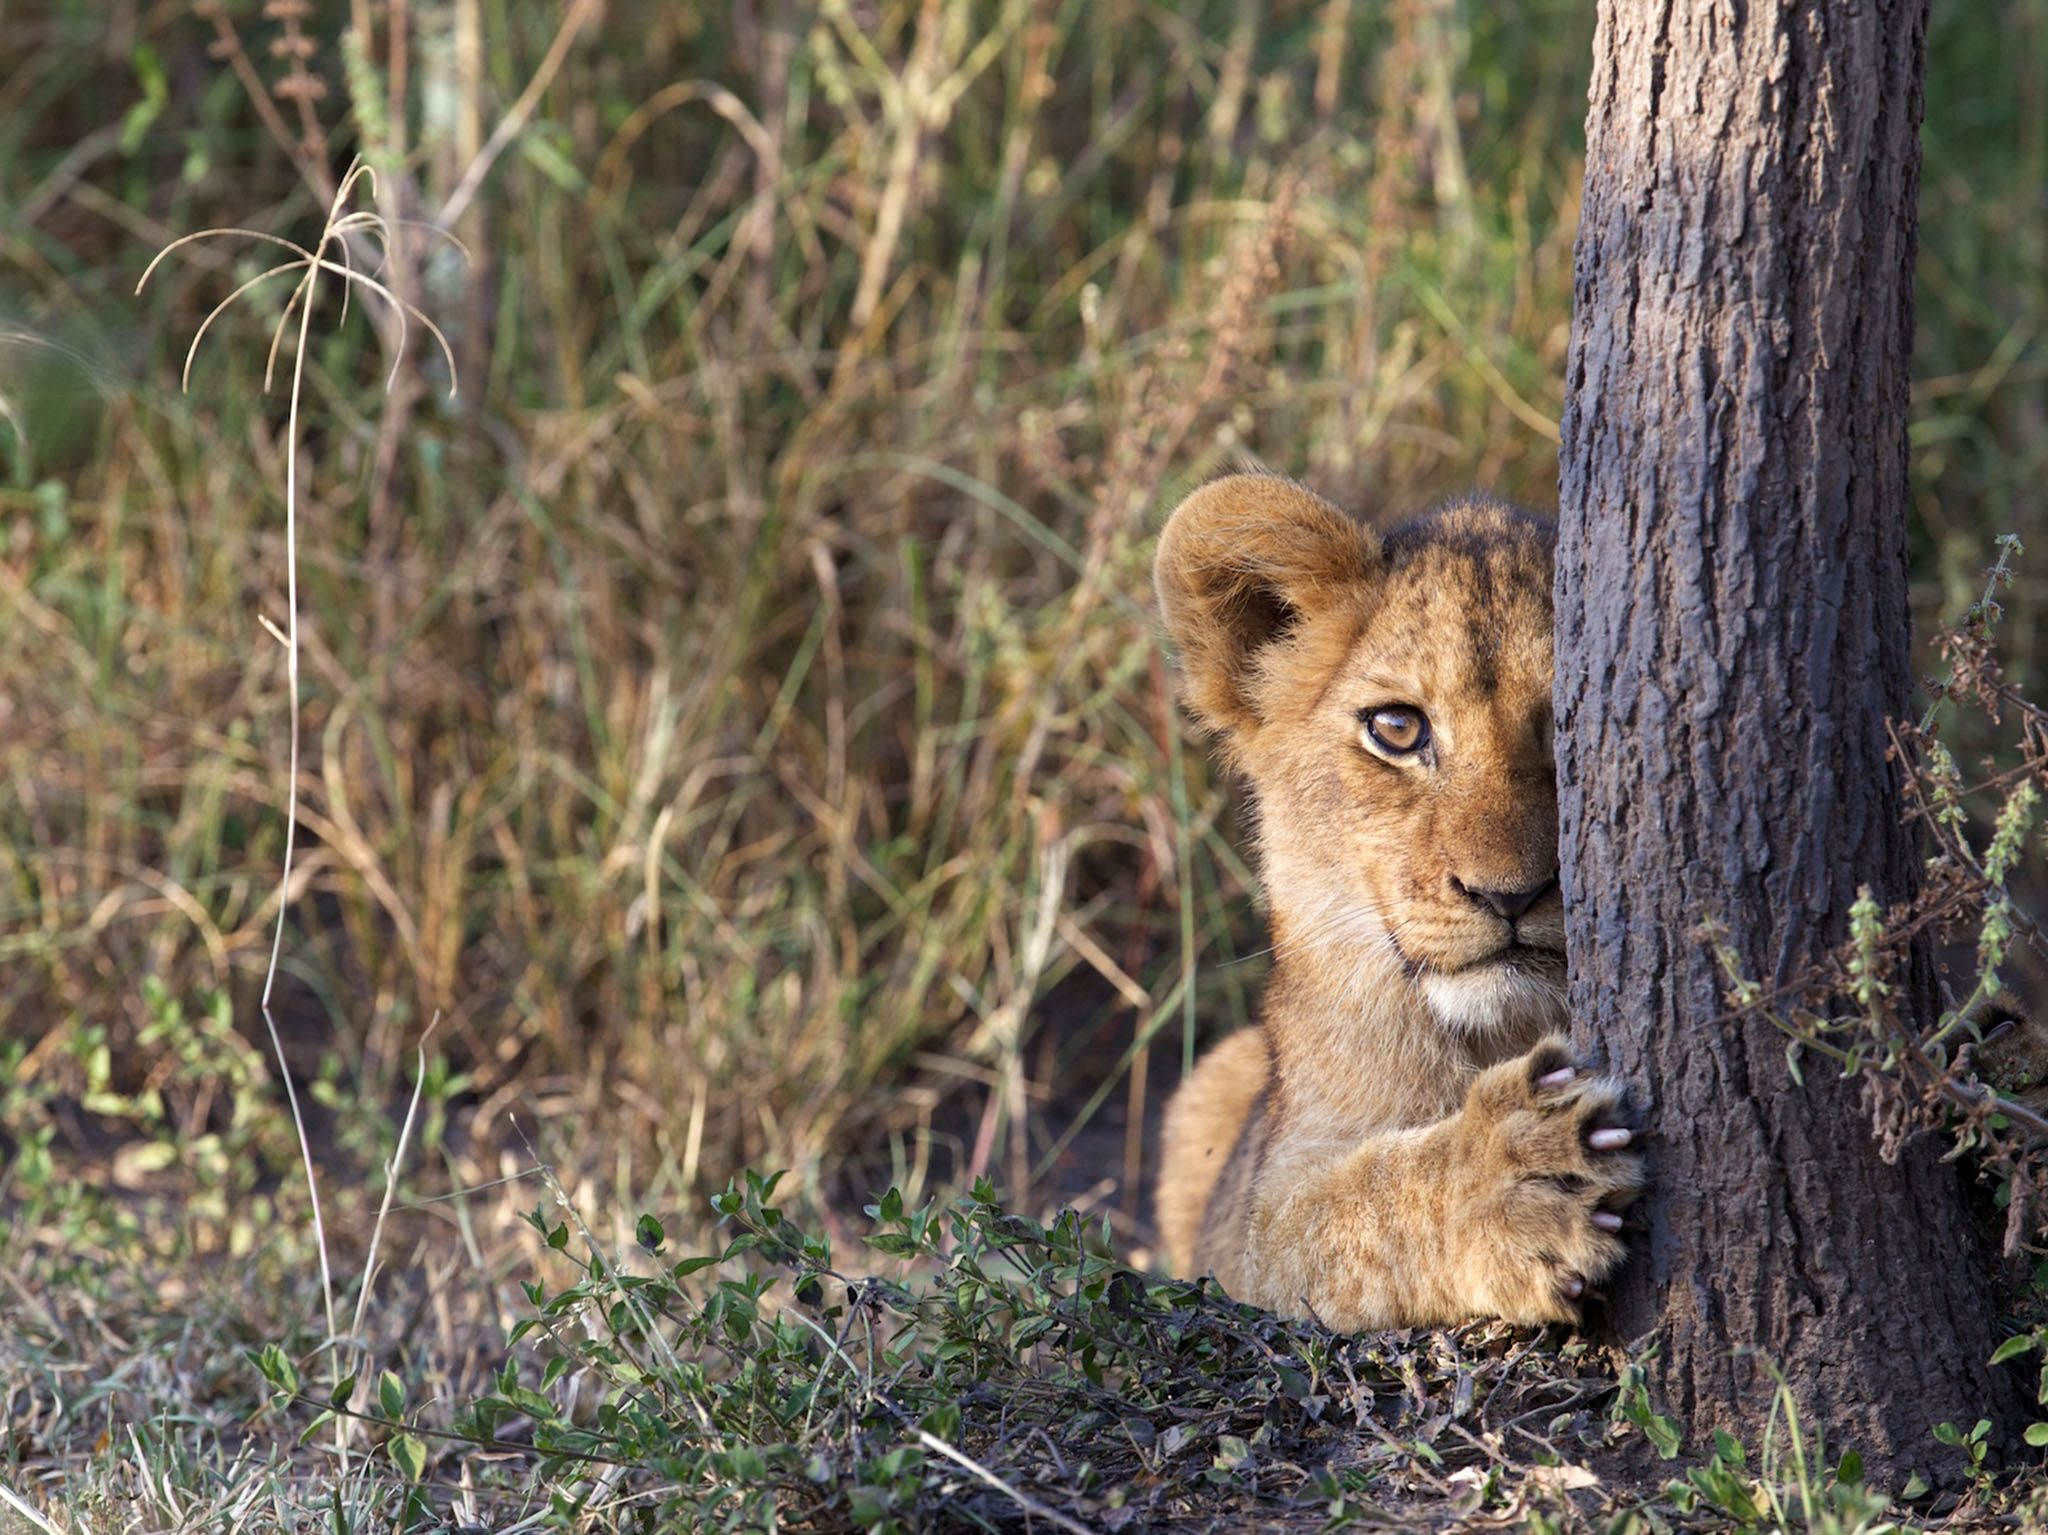 Rwanda: Lion cub peeking out from behind tree trunk in Akagera National Park, Rwanda. This image... [Photo of the day - 三月 2017]